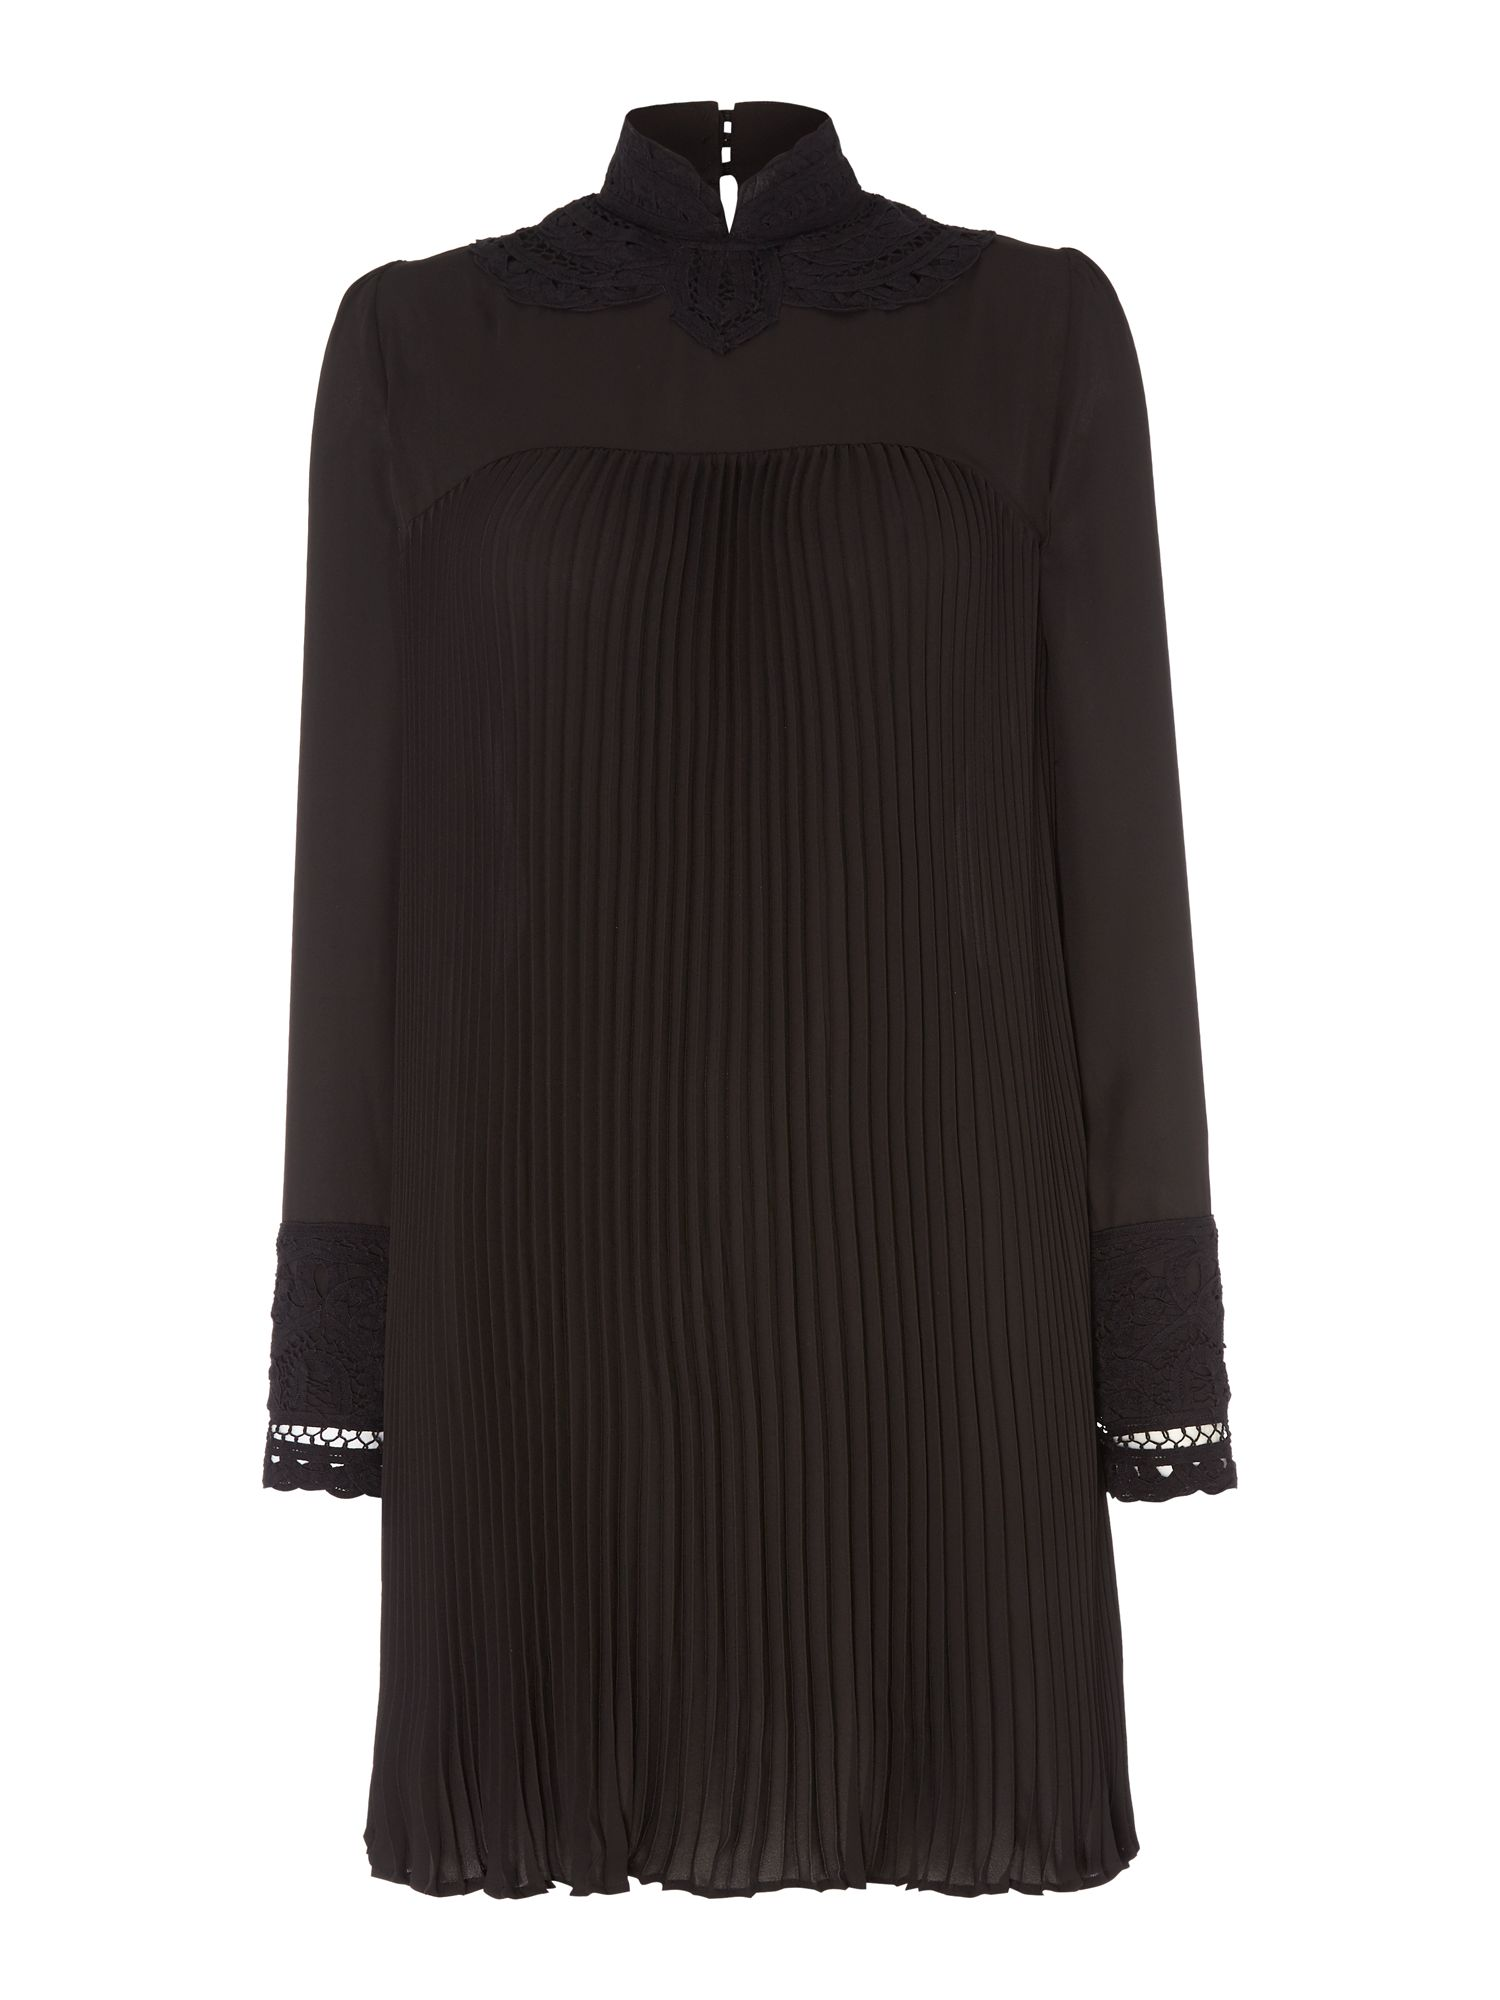 Biba Biba Victoriana pleated lace dress, Black